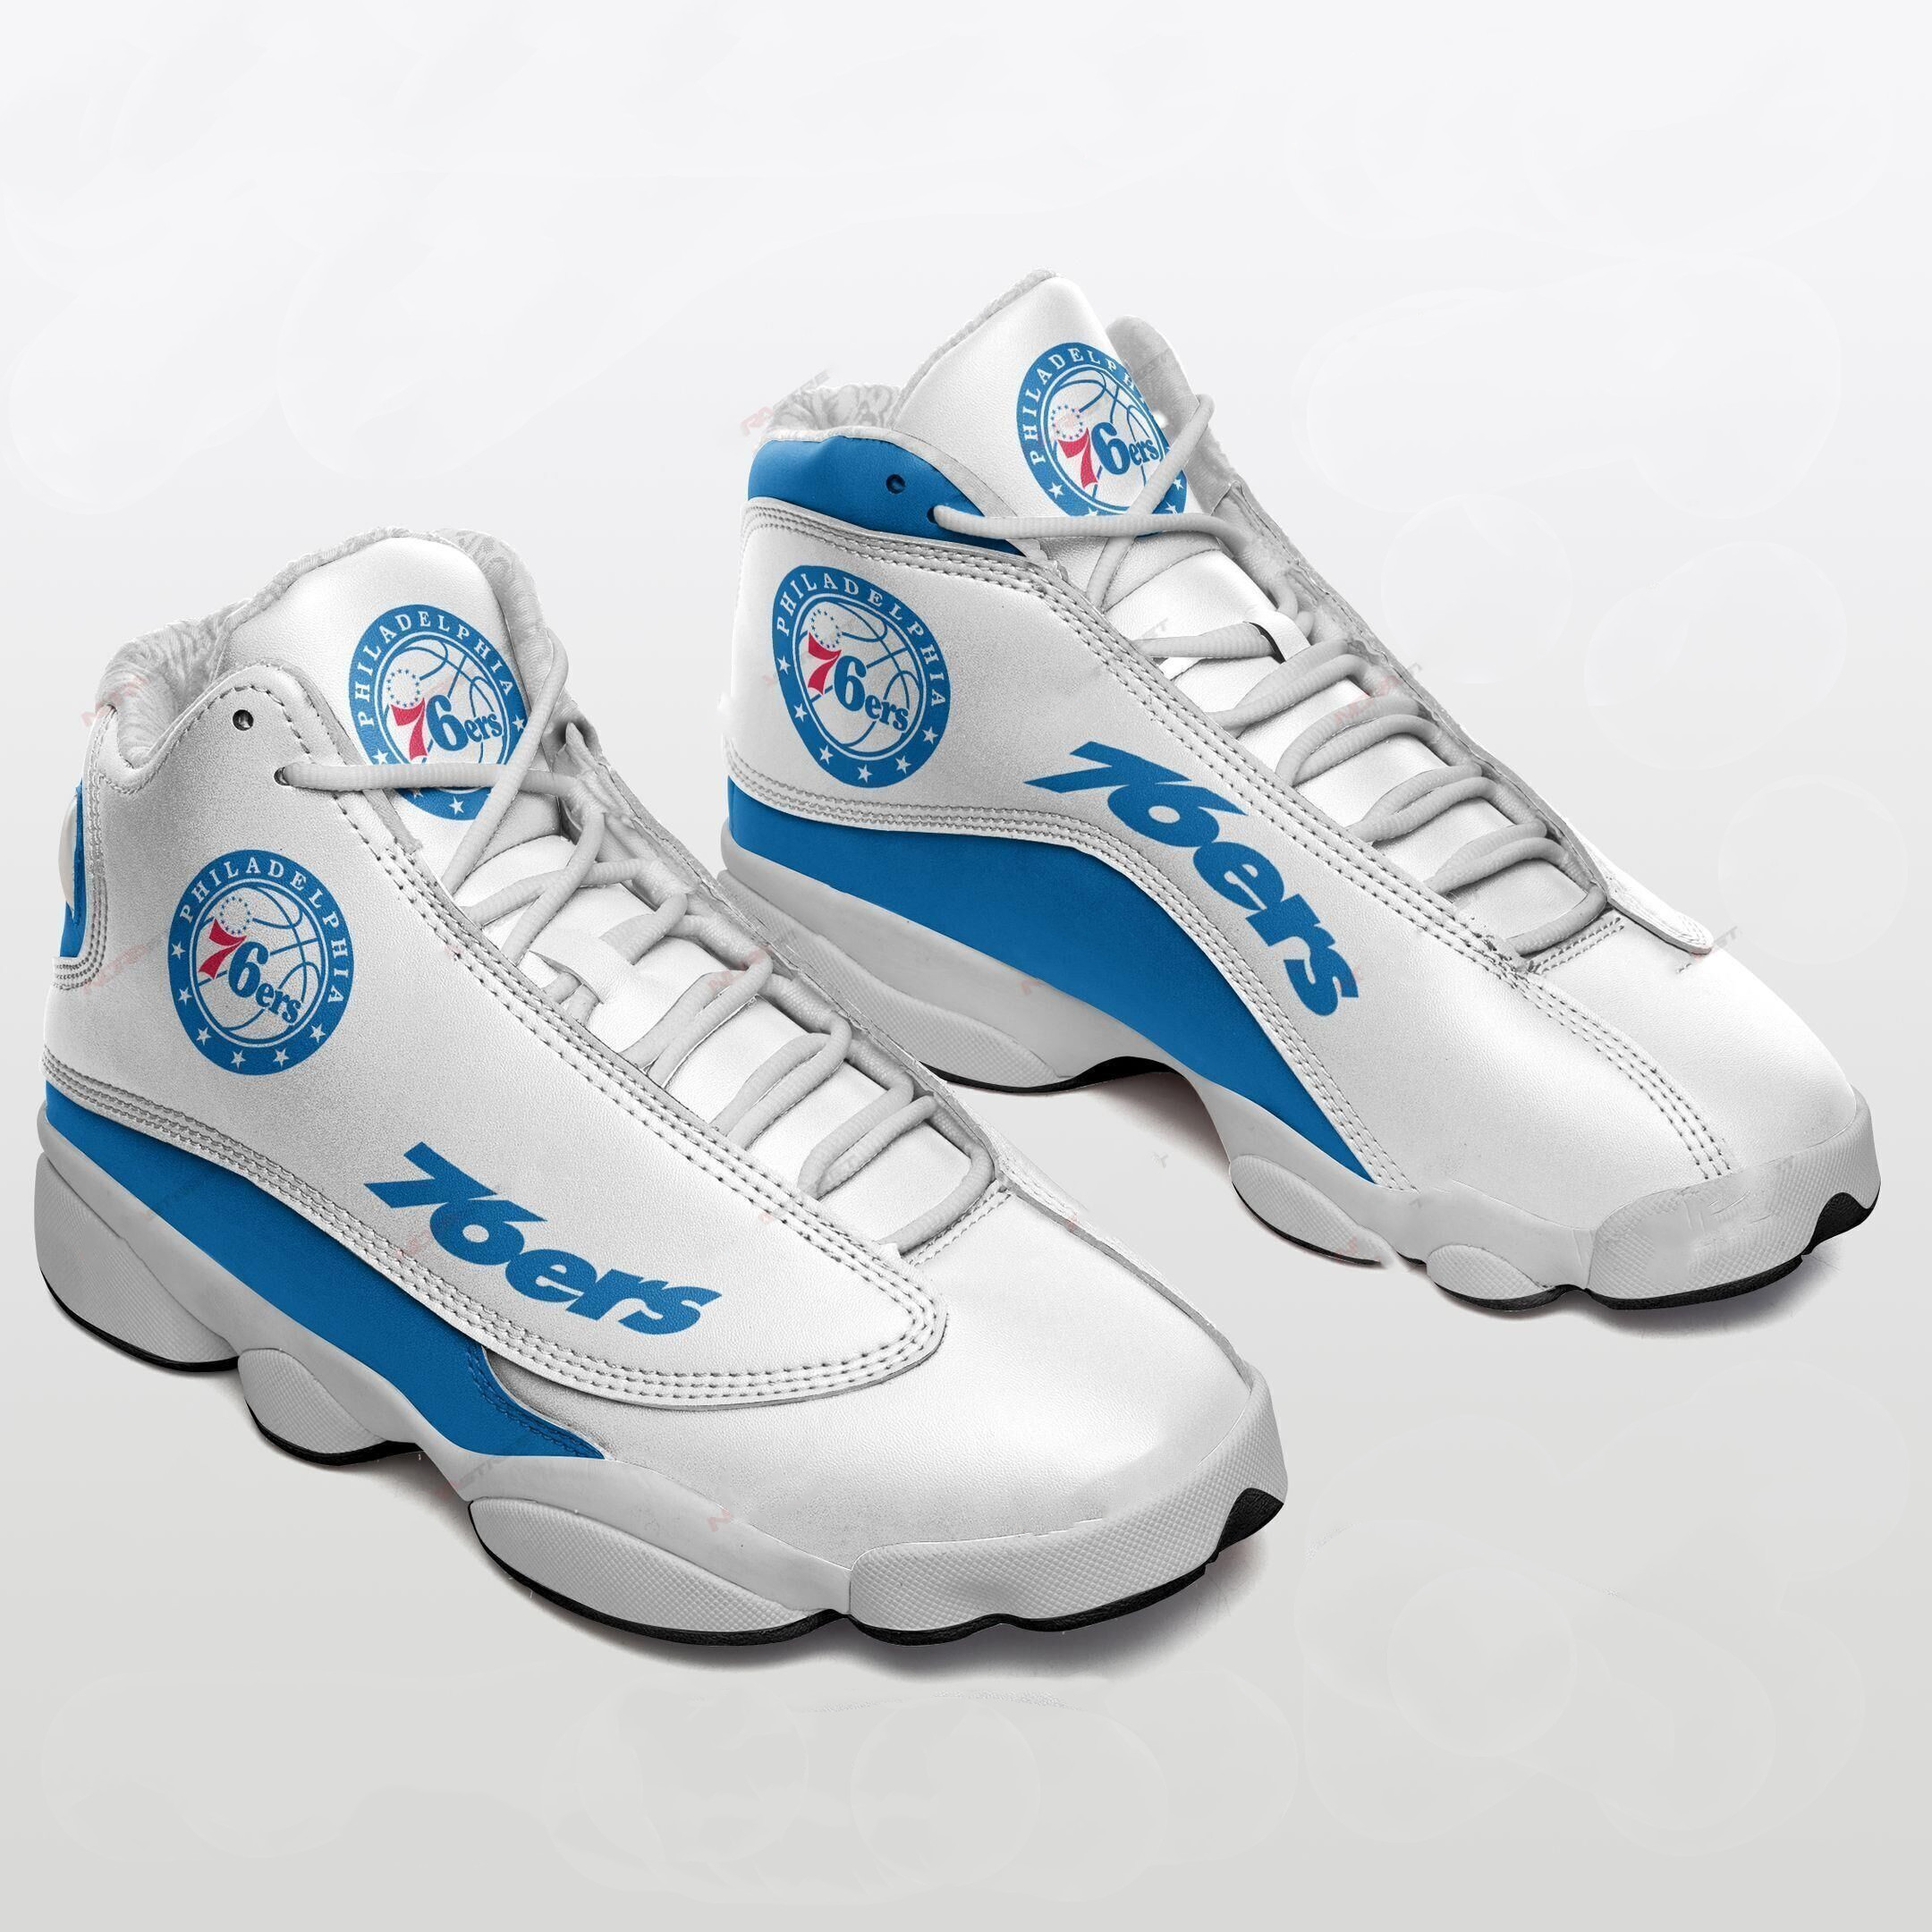 Women's Philadelphia 76ers Limited Edition JD13 Sneakers 001